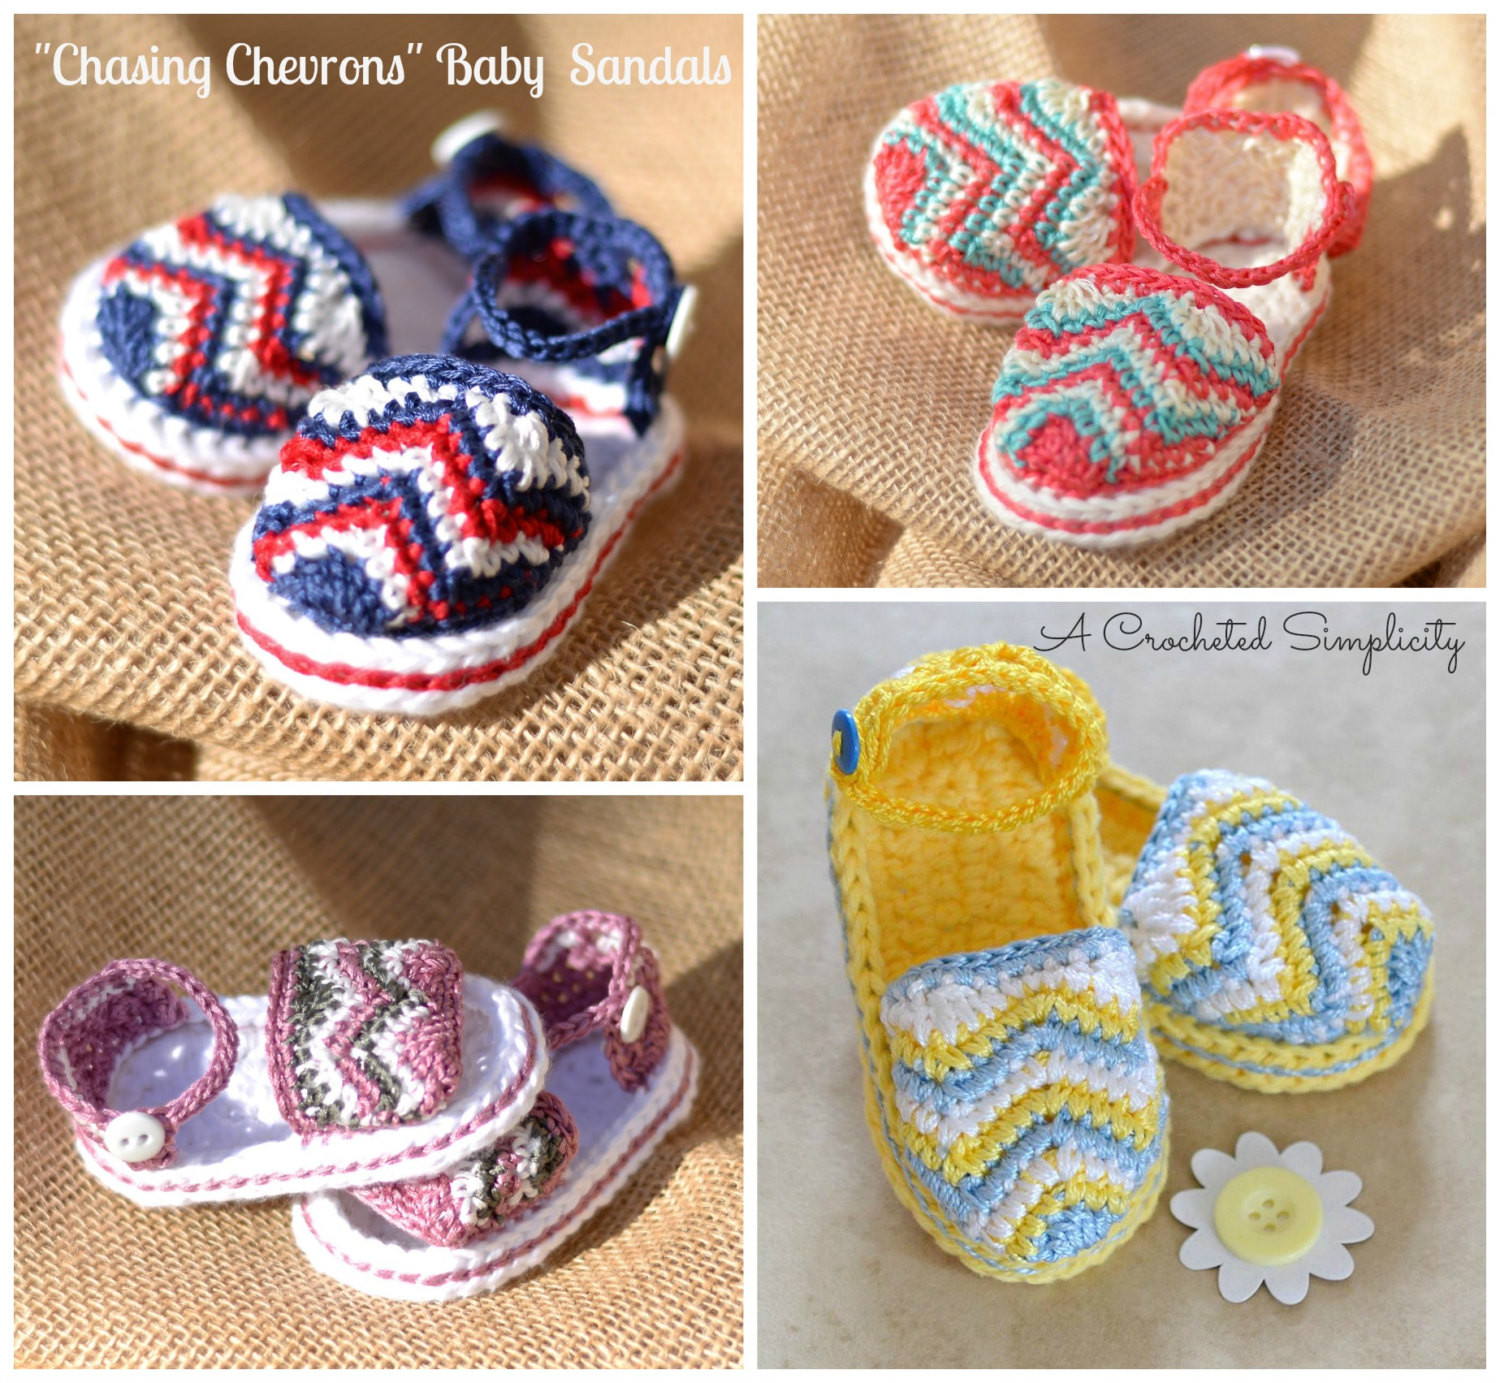 Crochet Baby Sandals Pattern Unique Crochet Pattern Chasing Chevrons Baby Sandals Of Perfect 43 Photos Crochet Baby Sandals Pattern